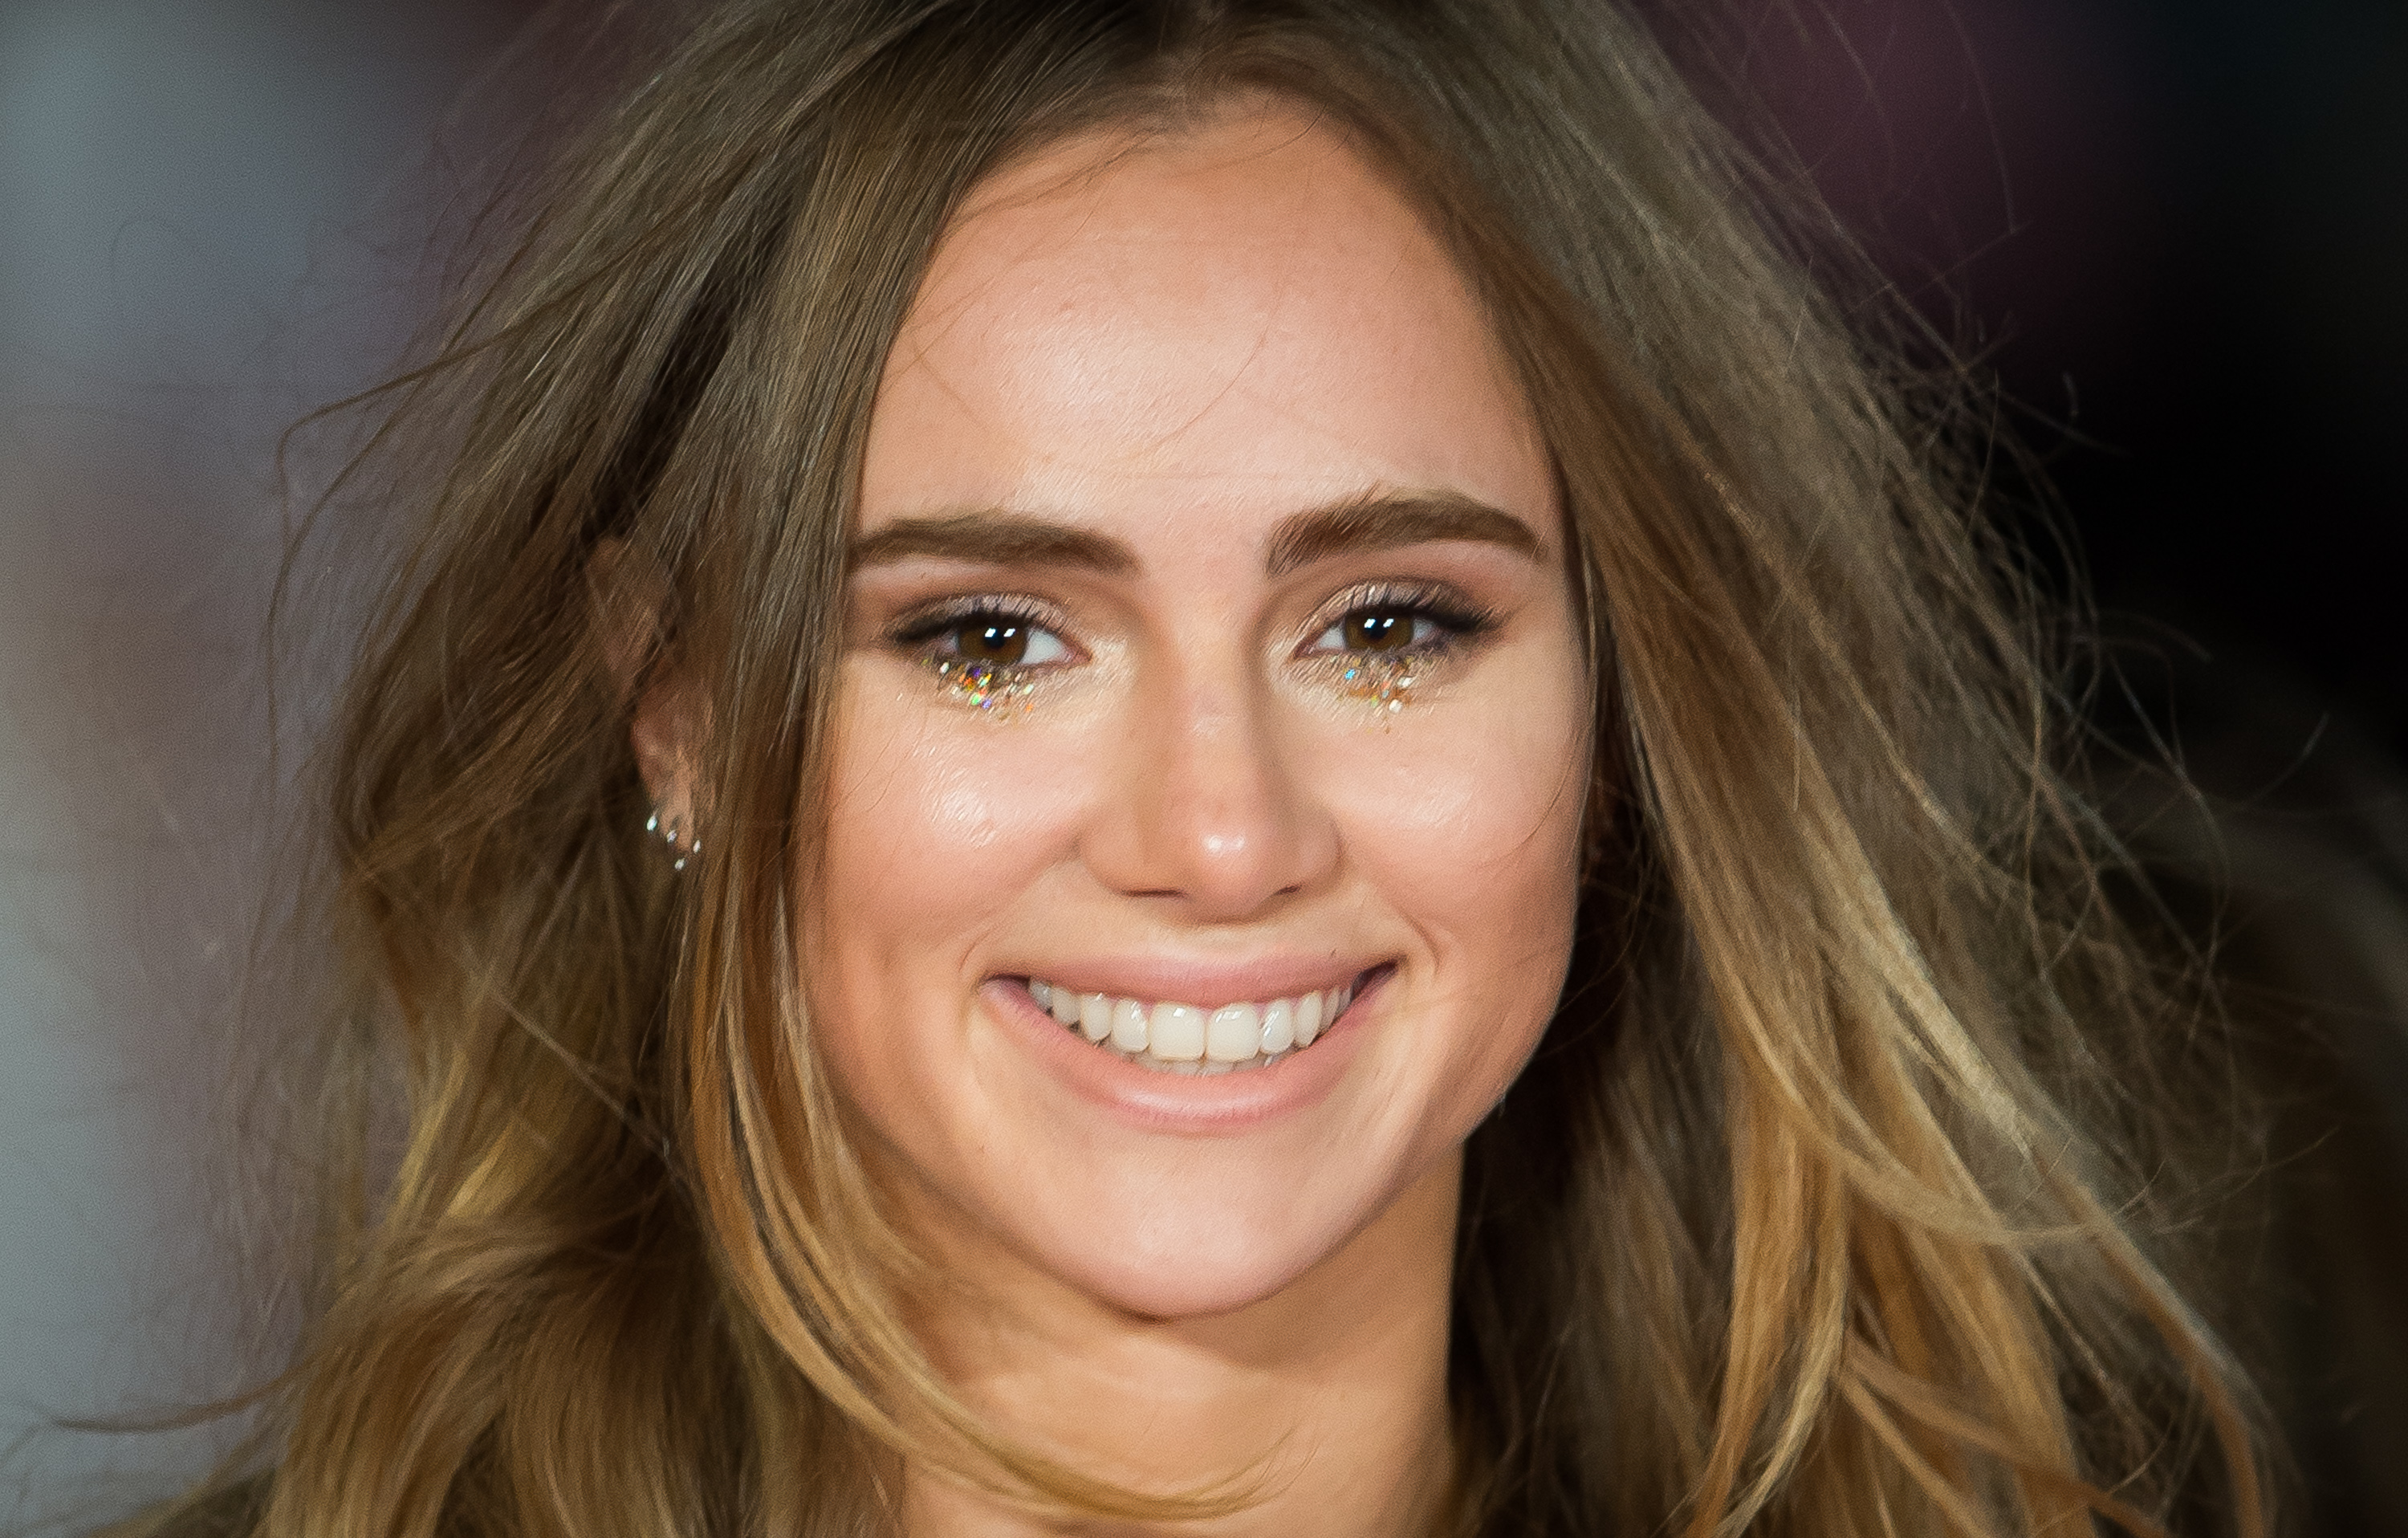 Ever heard of a 4-piece swimsuit? Allow Suki Waterhouse to demonstrate